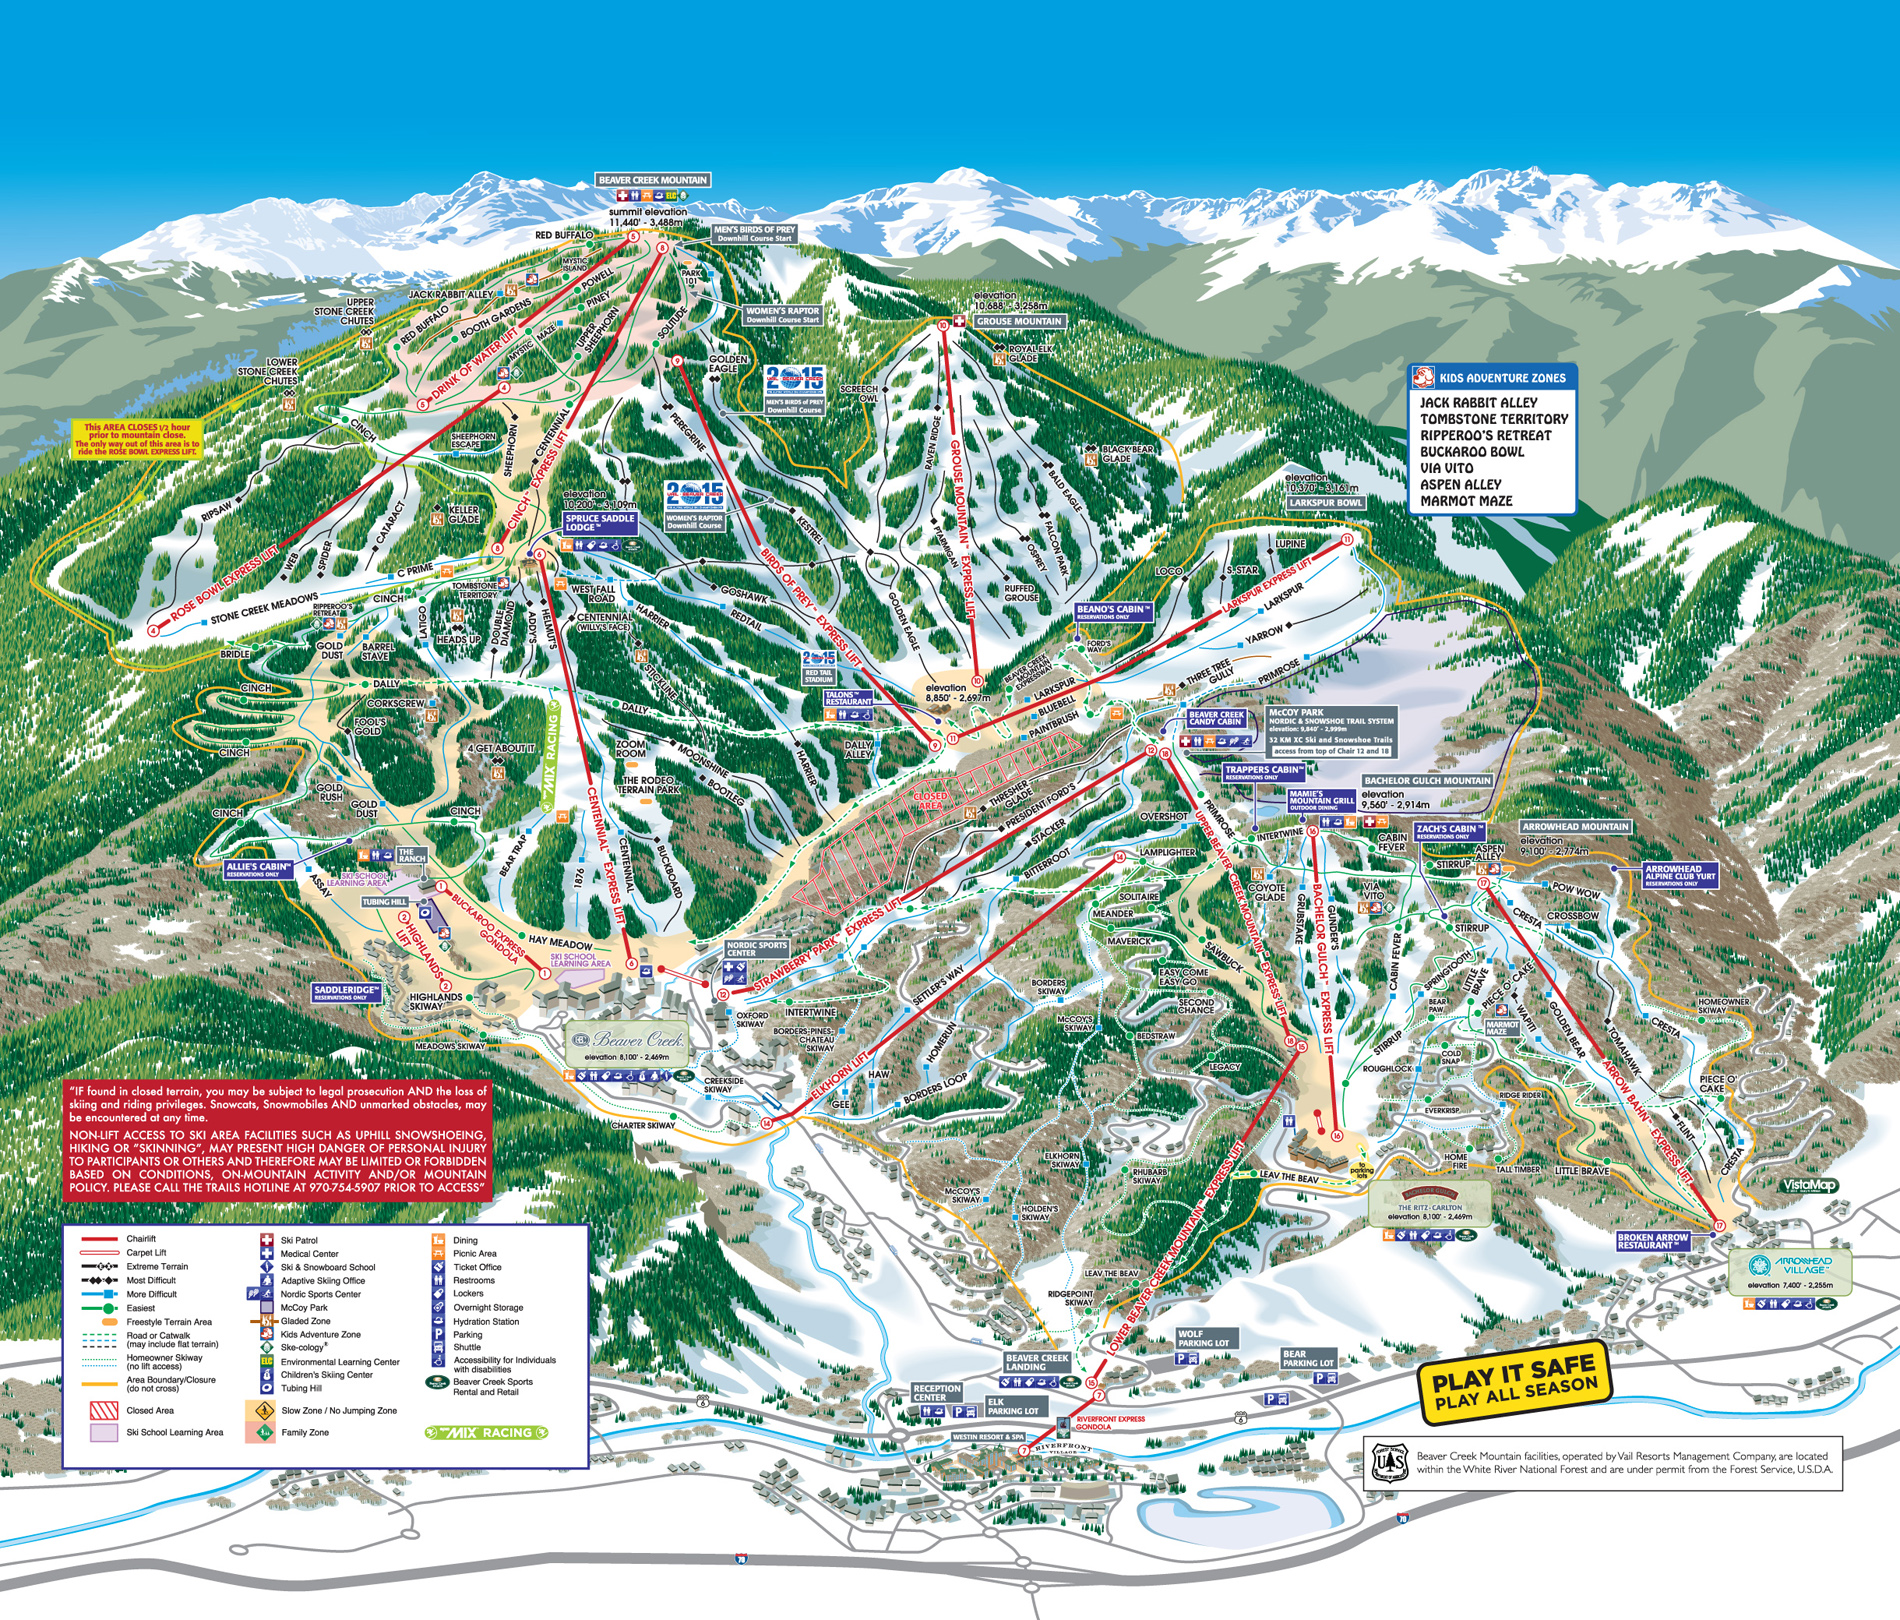 Beaver Creek Skiing & Snowboarding Resort Guide | evo